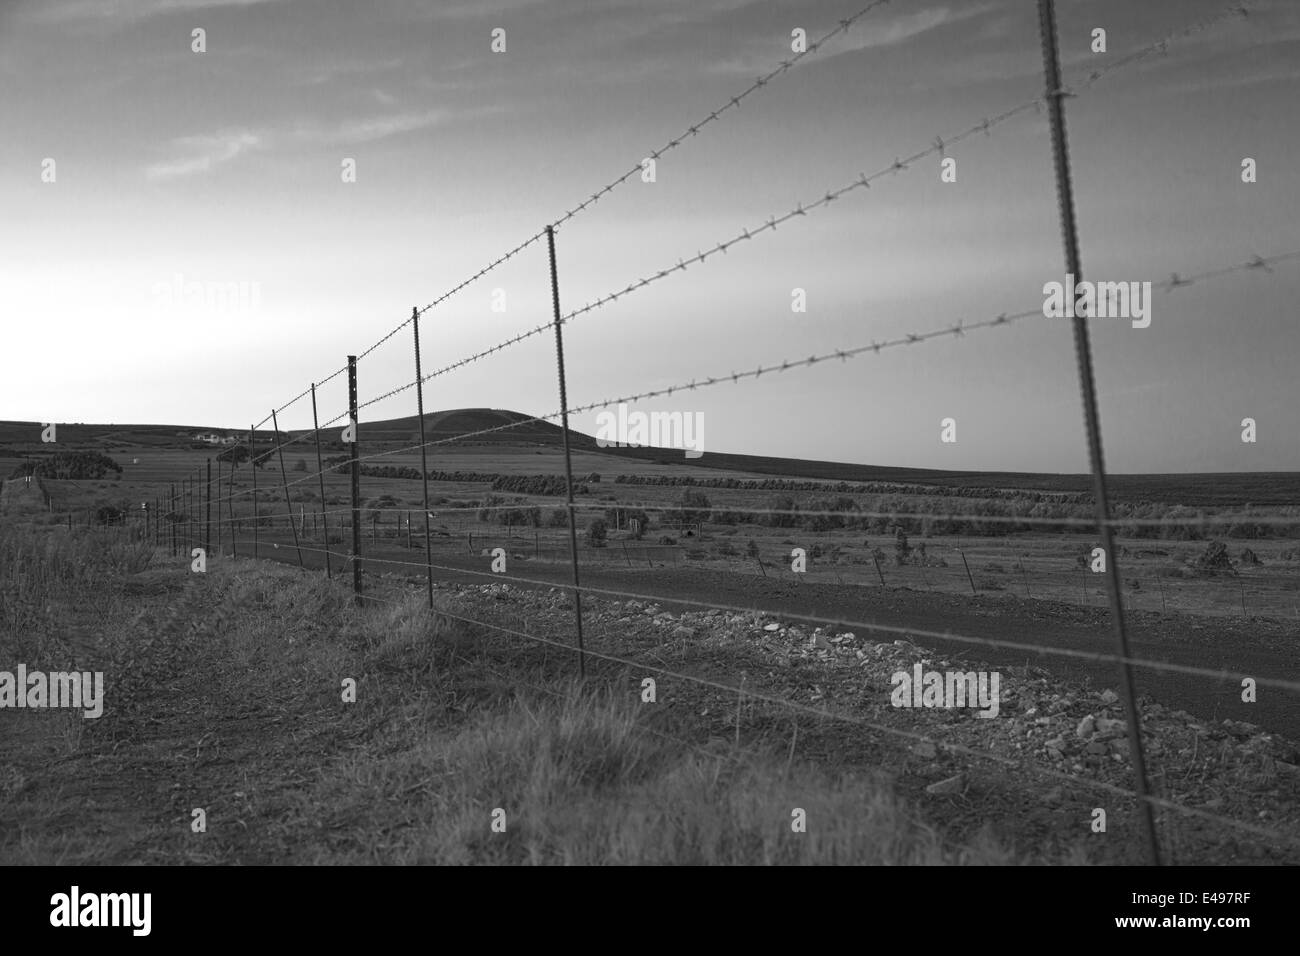 Farmlands as viewed through a barbed wire fence - Stock Image